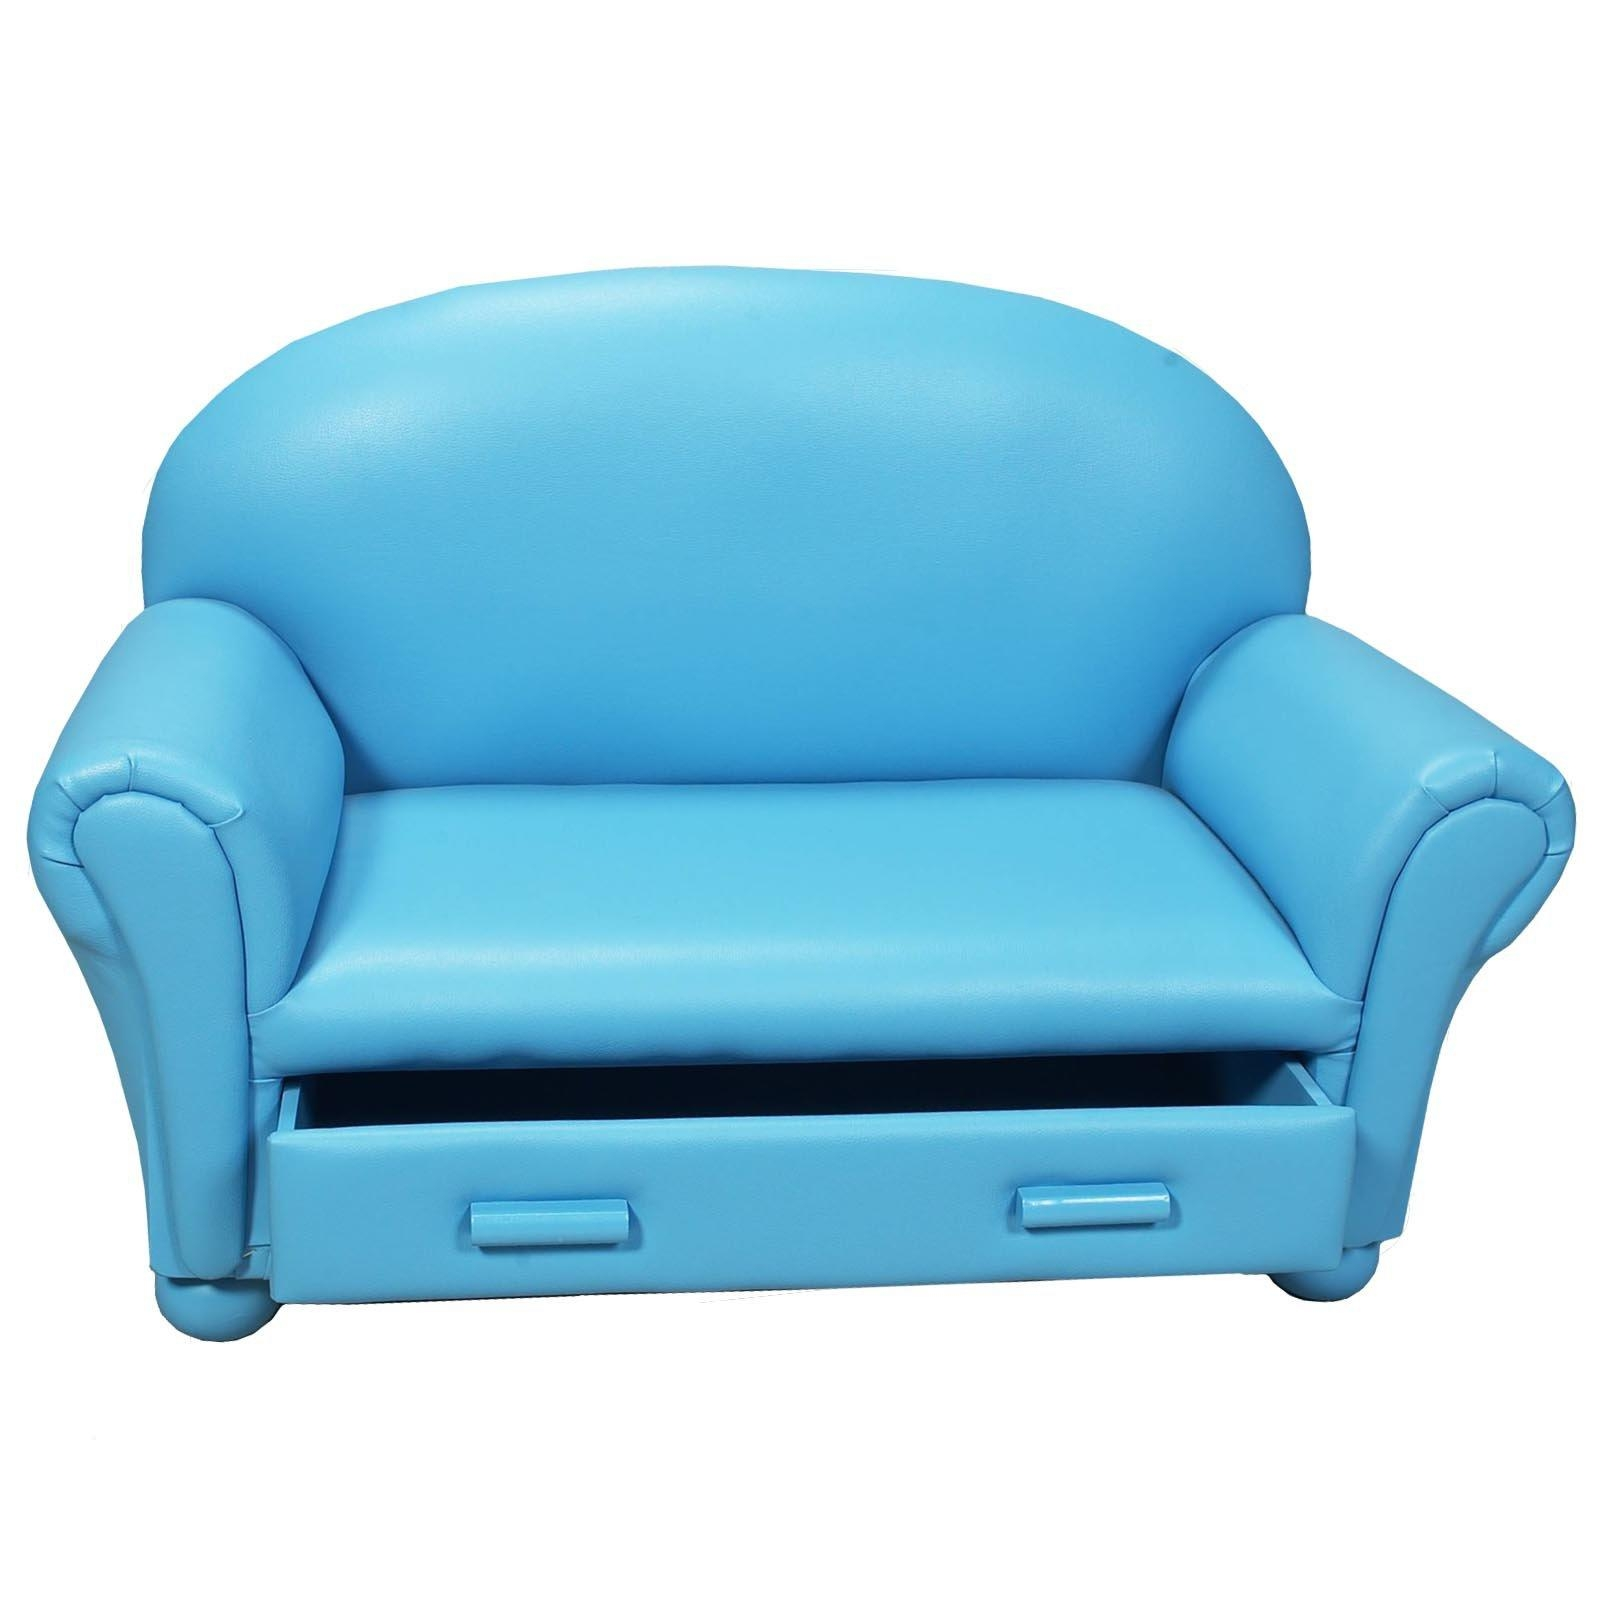 Childrens Sofa With Storage Drawer | Hayneedle With Regard To Childrens Sofa Chairs (Image 4 of 20)